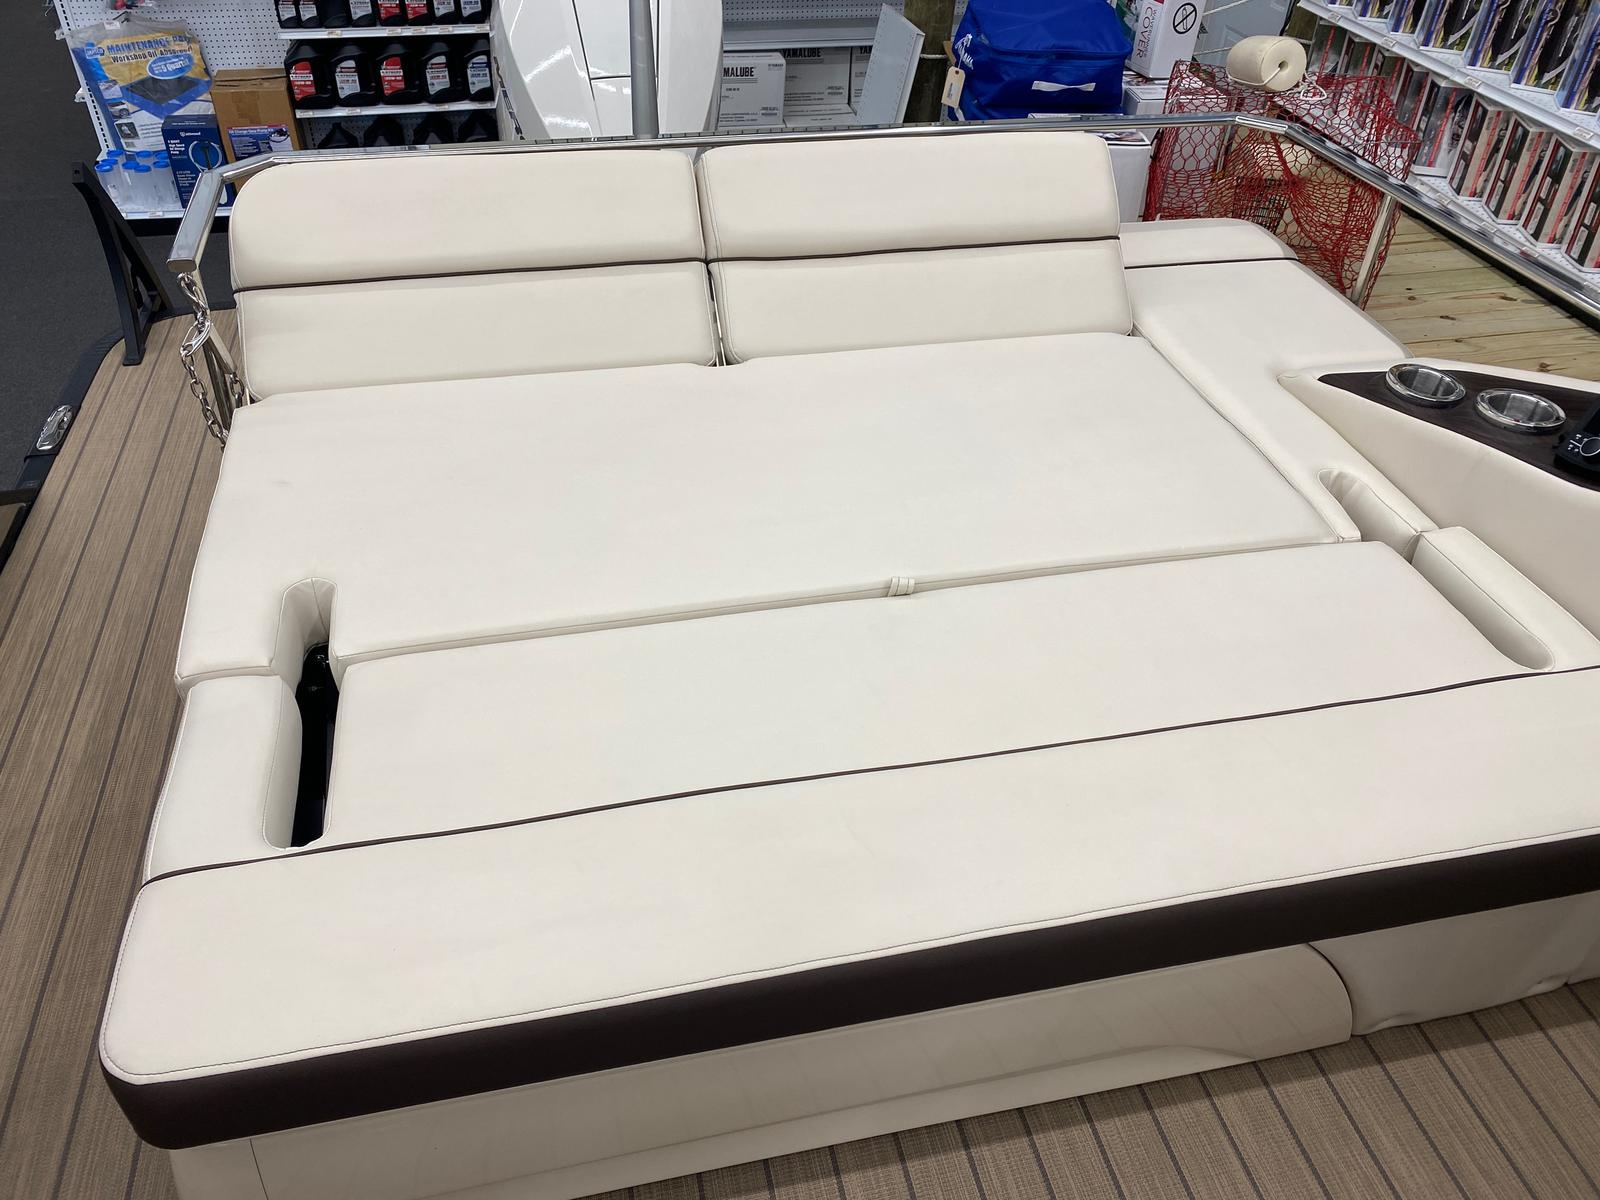 2021 Bennington boat for sale, model of the boat is 23 RSBWA WSHLD DLX Fold Open SP Arch Tri-Toon ESP Package & Image # 15 of 25